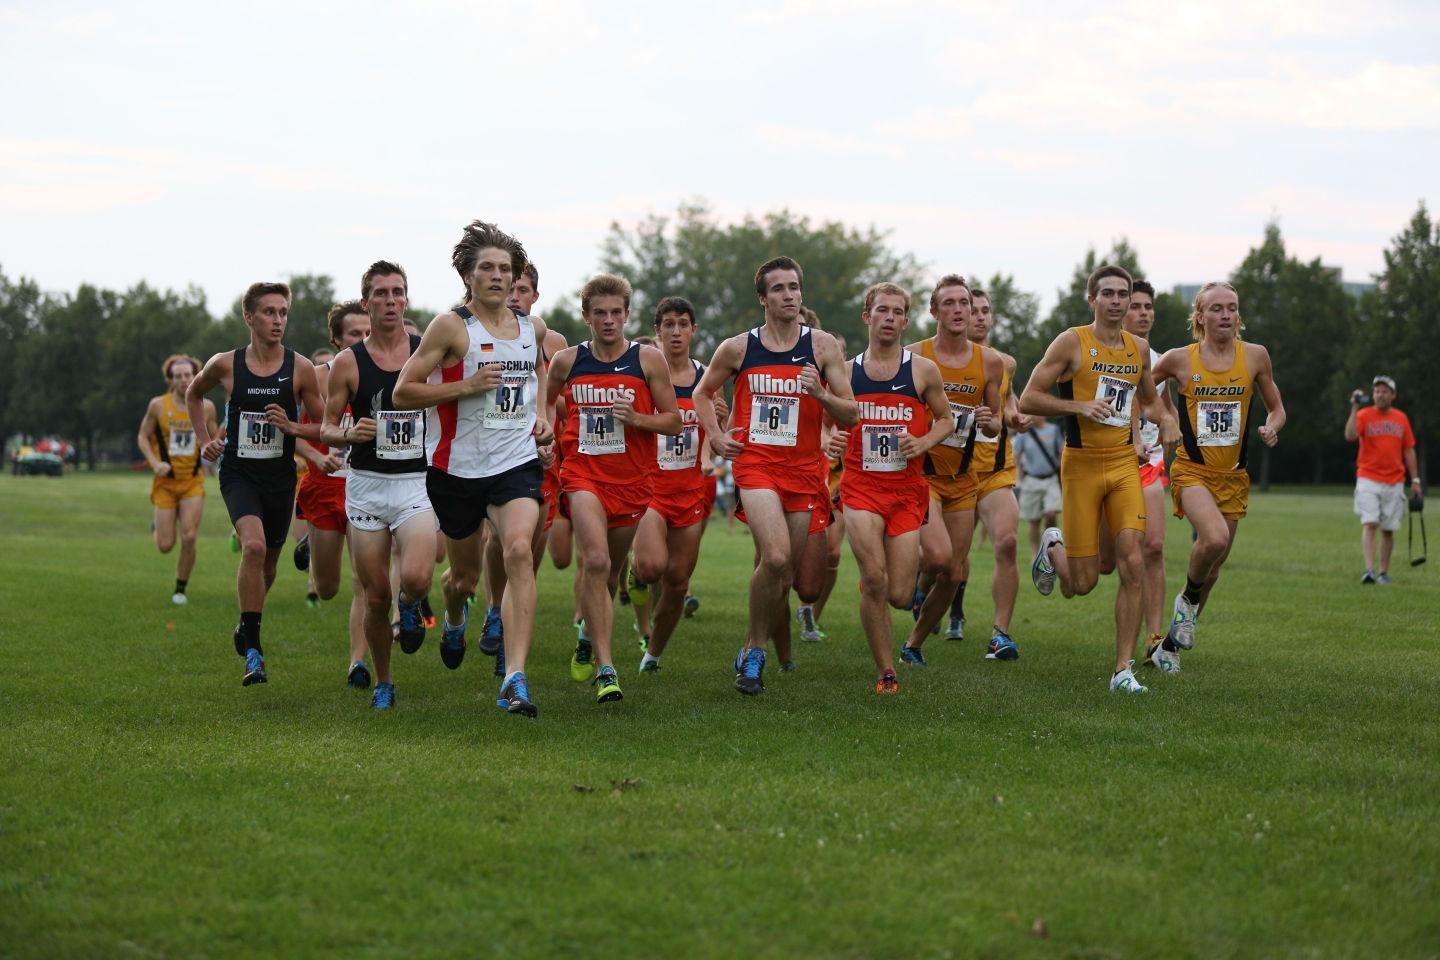 The Fighting Illini men's track and cross country team start their race during the Illini Challenge at the UI Arboretum on Aug. 29.